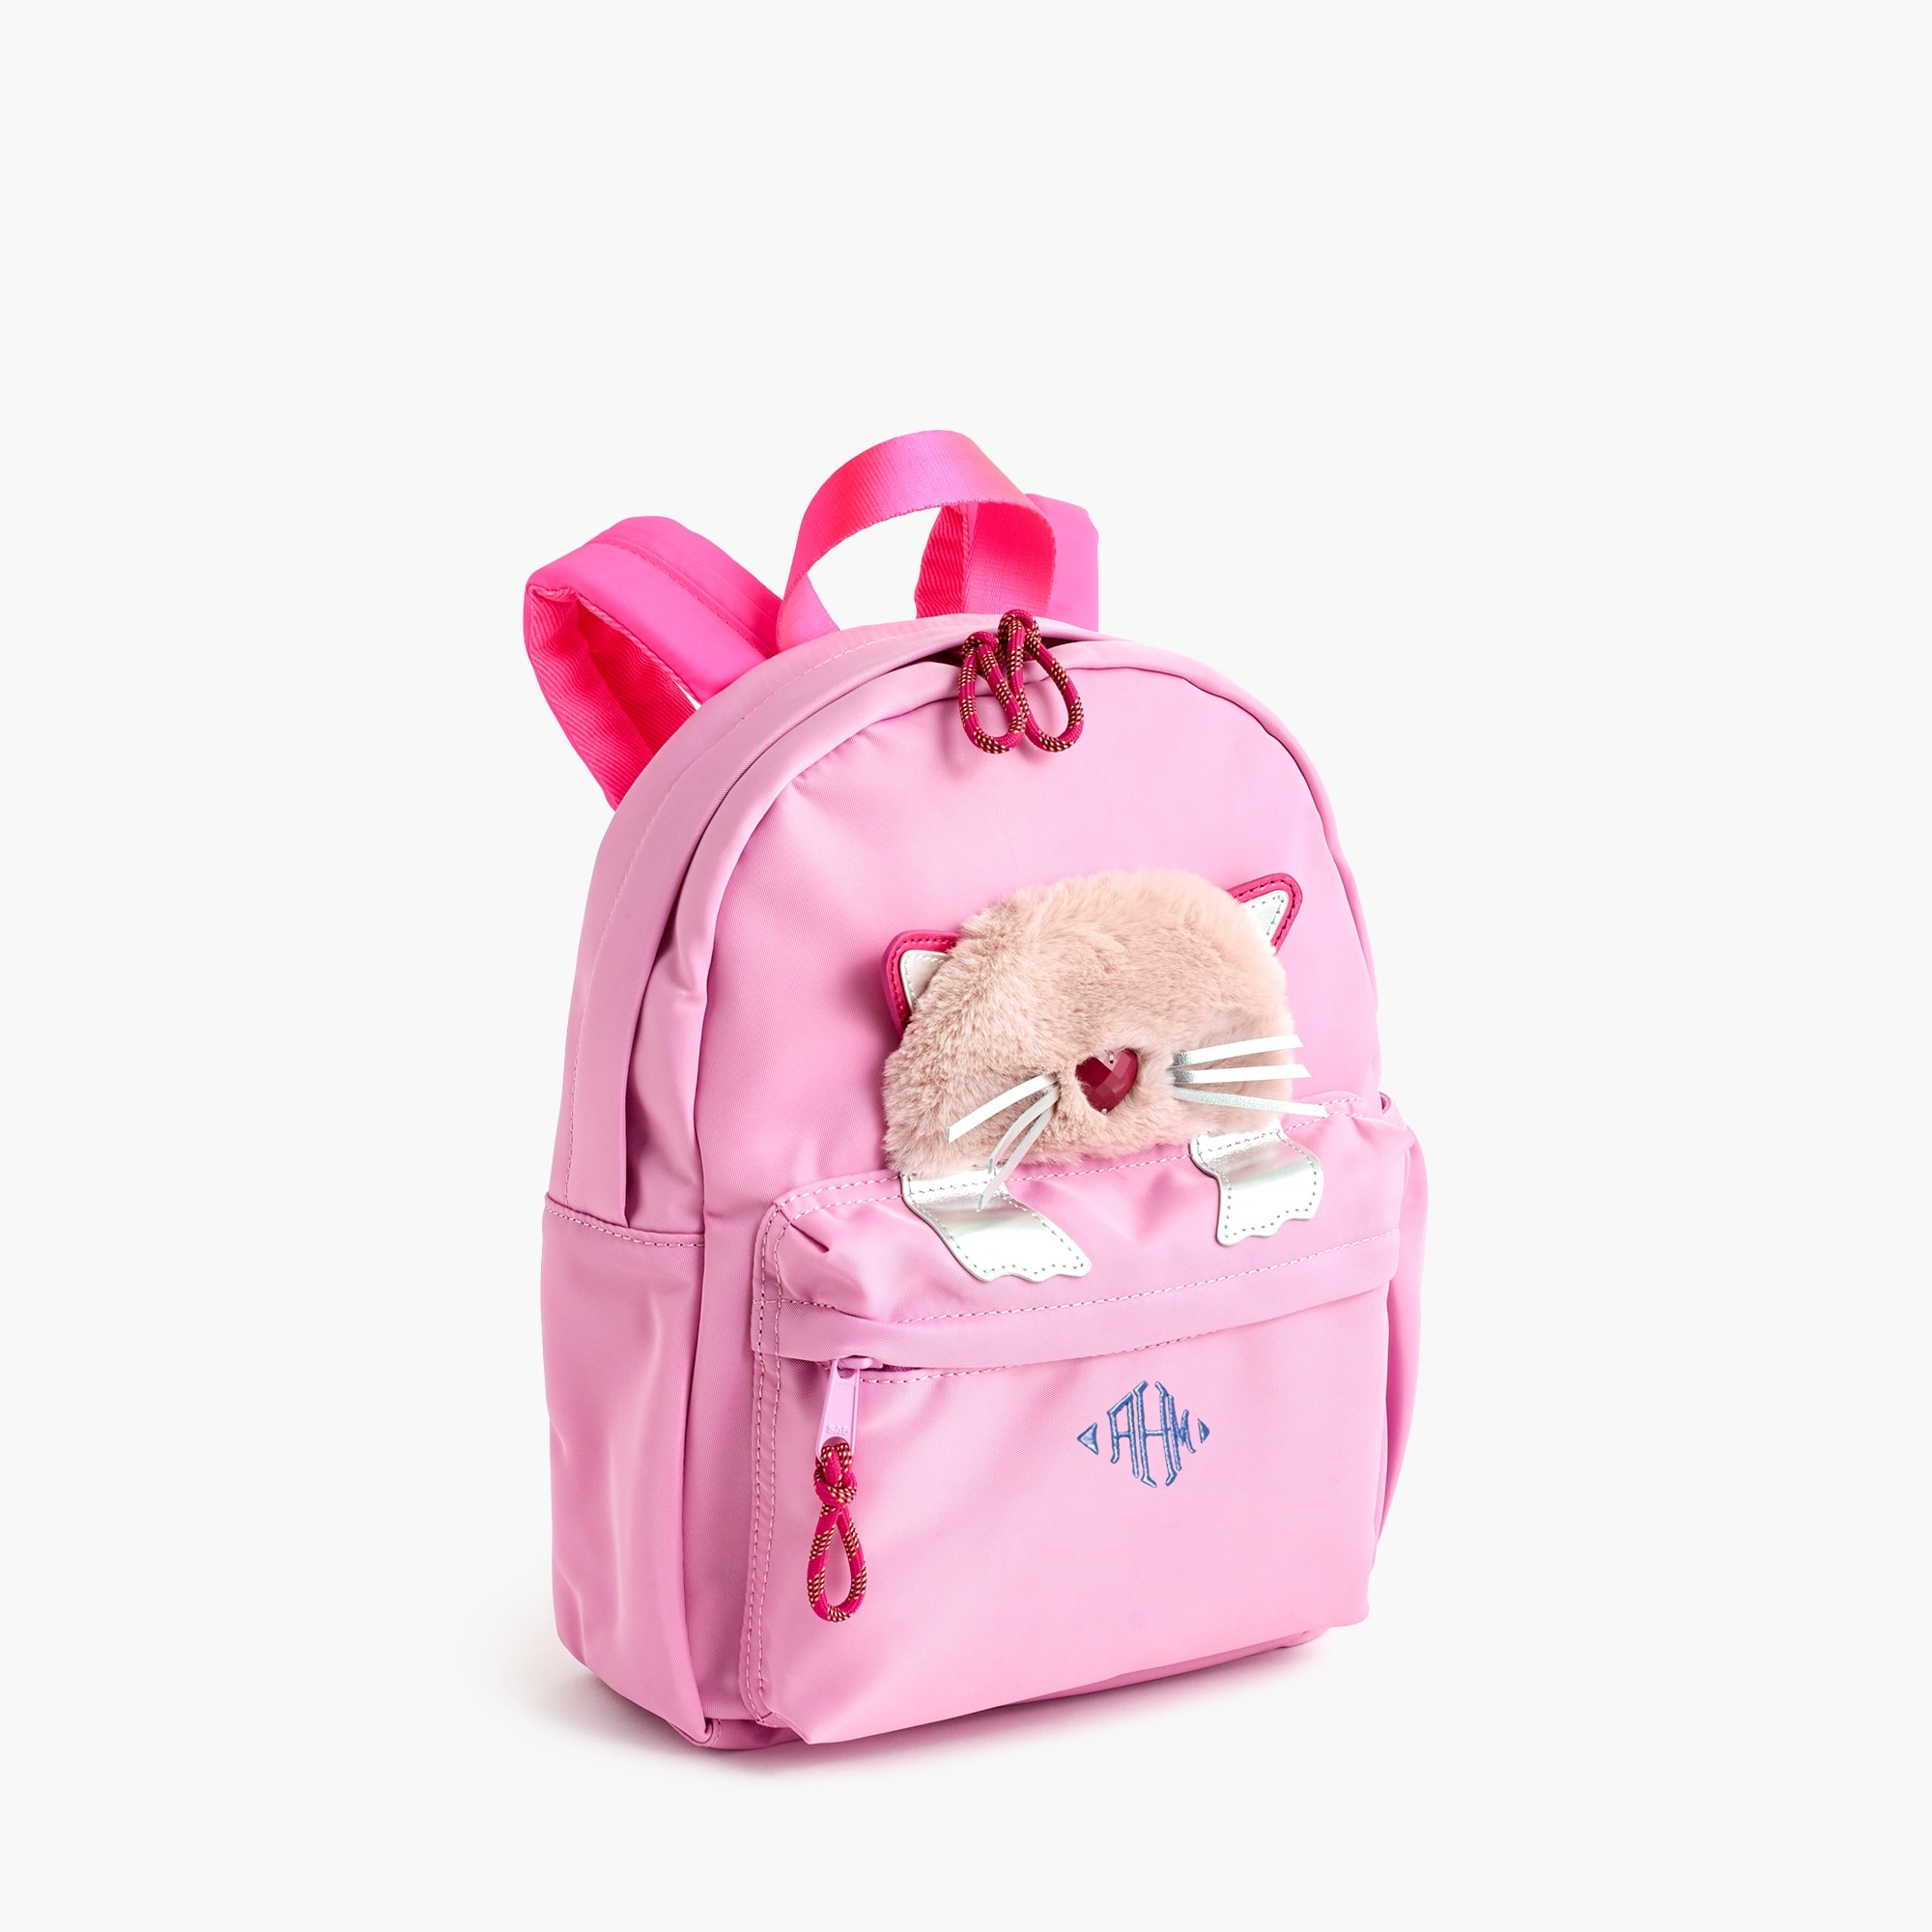 Image 2 for Girls' peekaboo kitty mini backpack